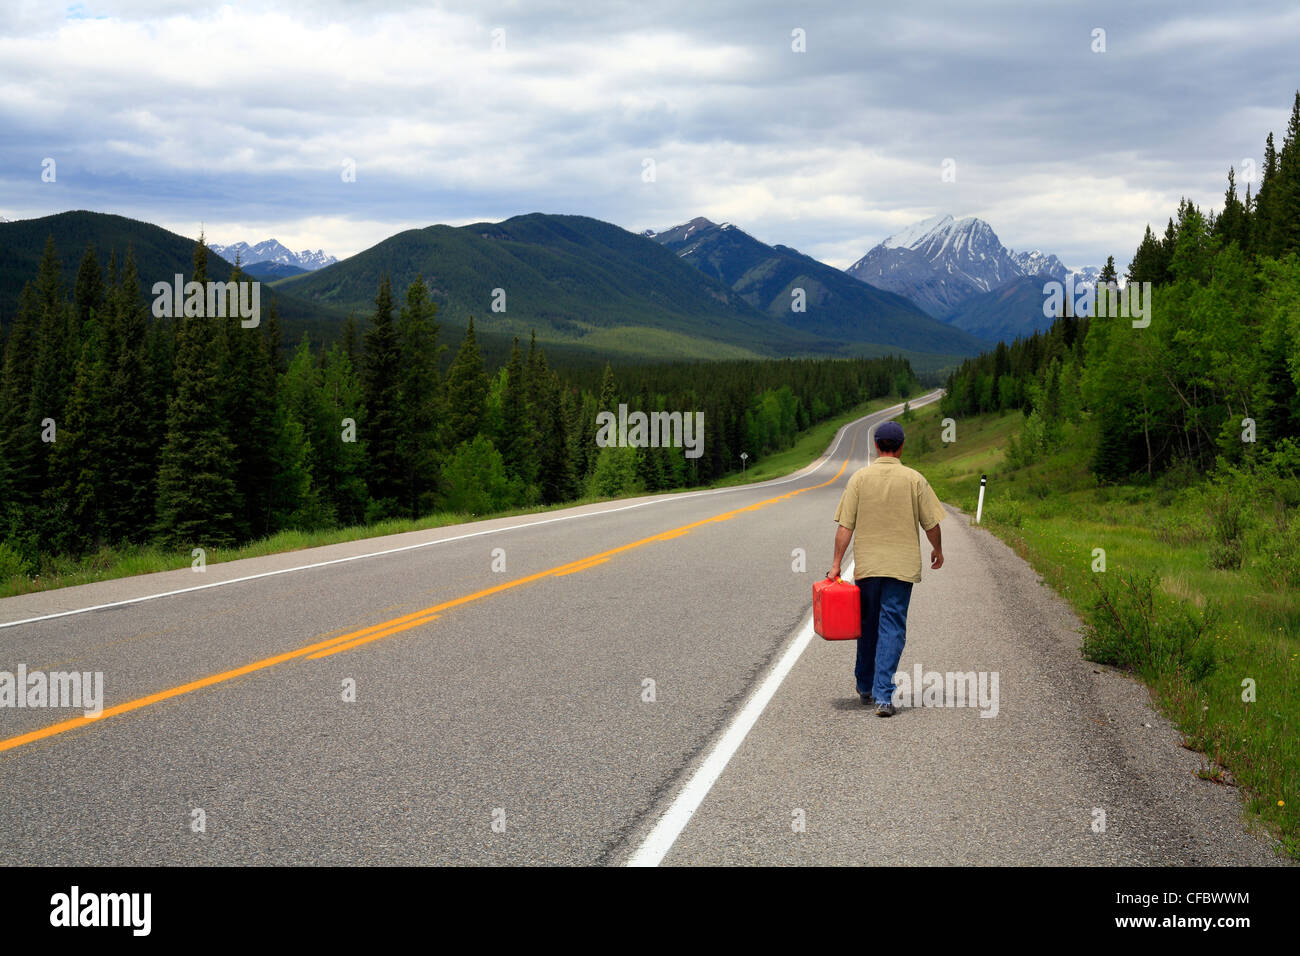 Driver walking with gas can on mountain highway, Kananaskis Provincial Park, Alberta, Canada - Stock Image